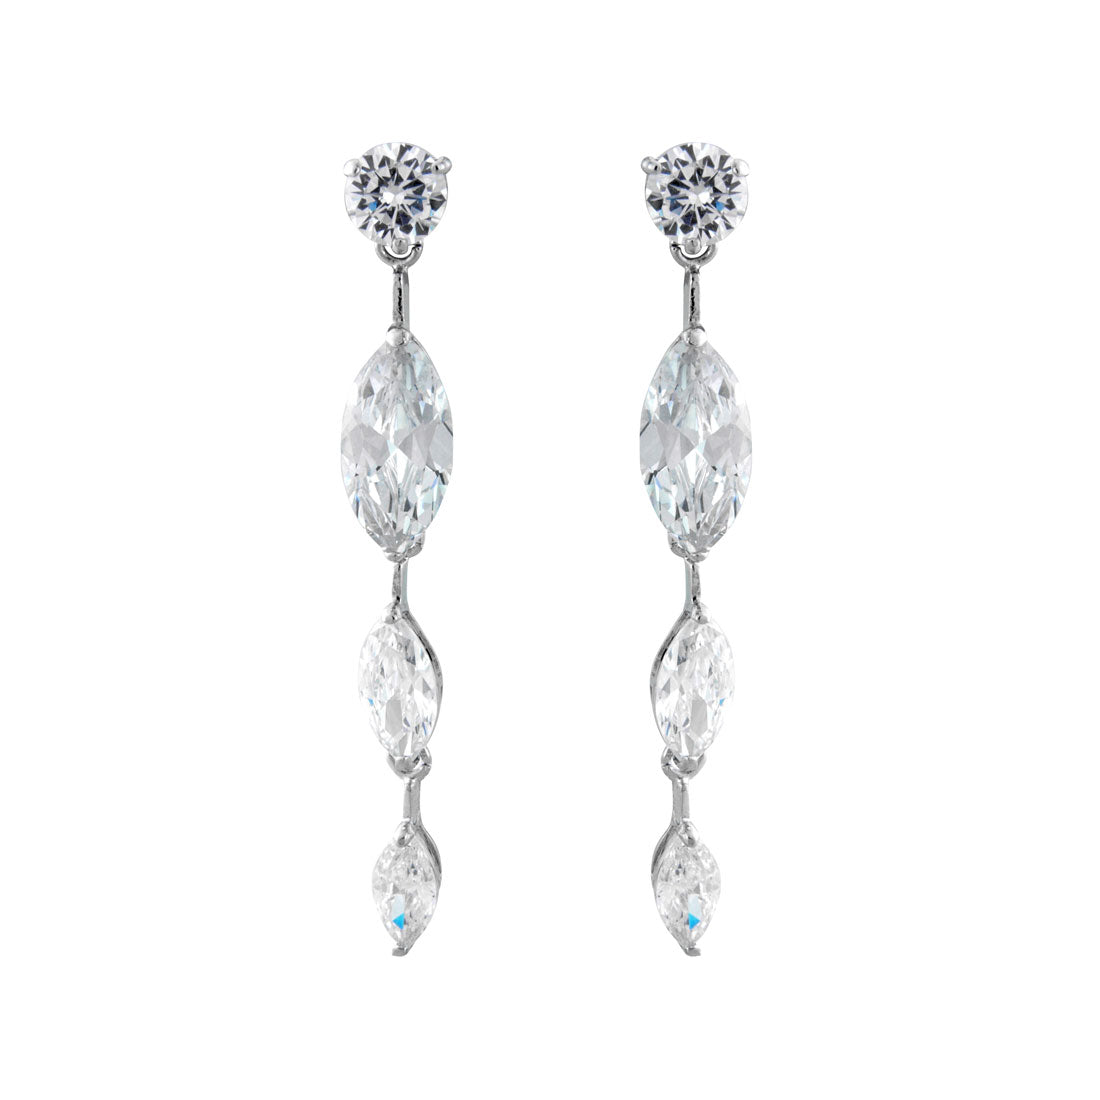 Glitz Glam Blue Diamontrigue Jewelry: Elegance Of Glamour Earrings